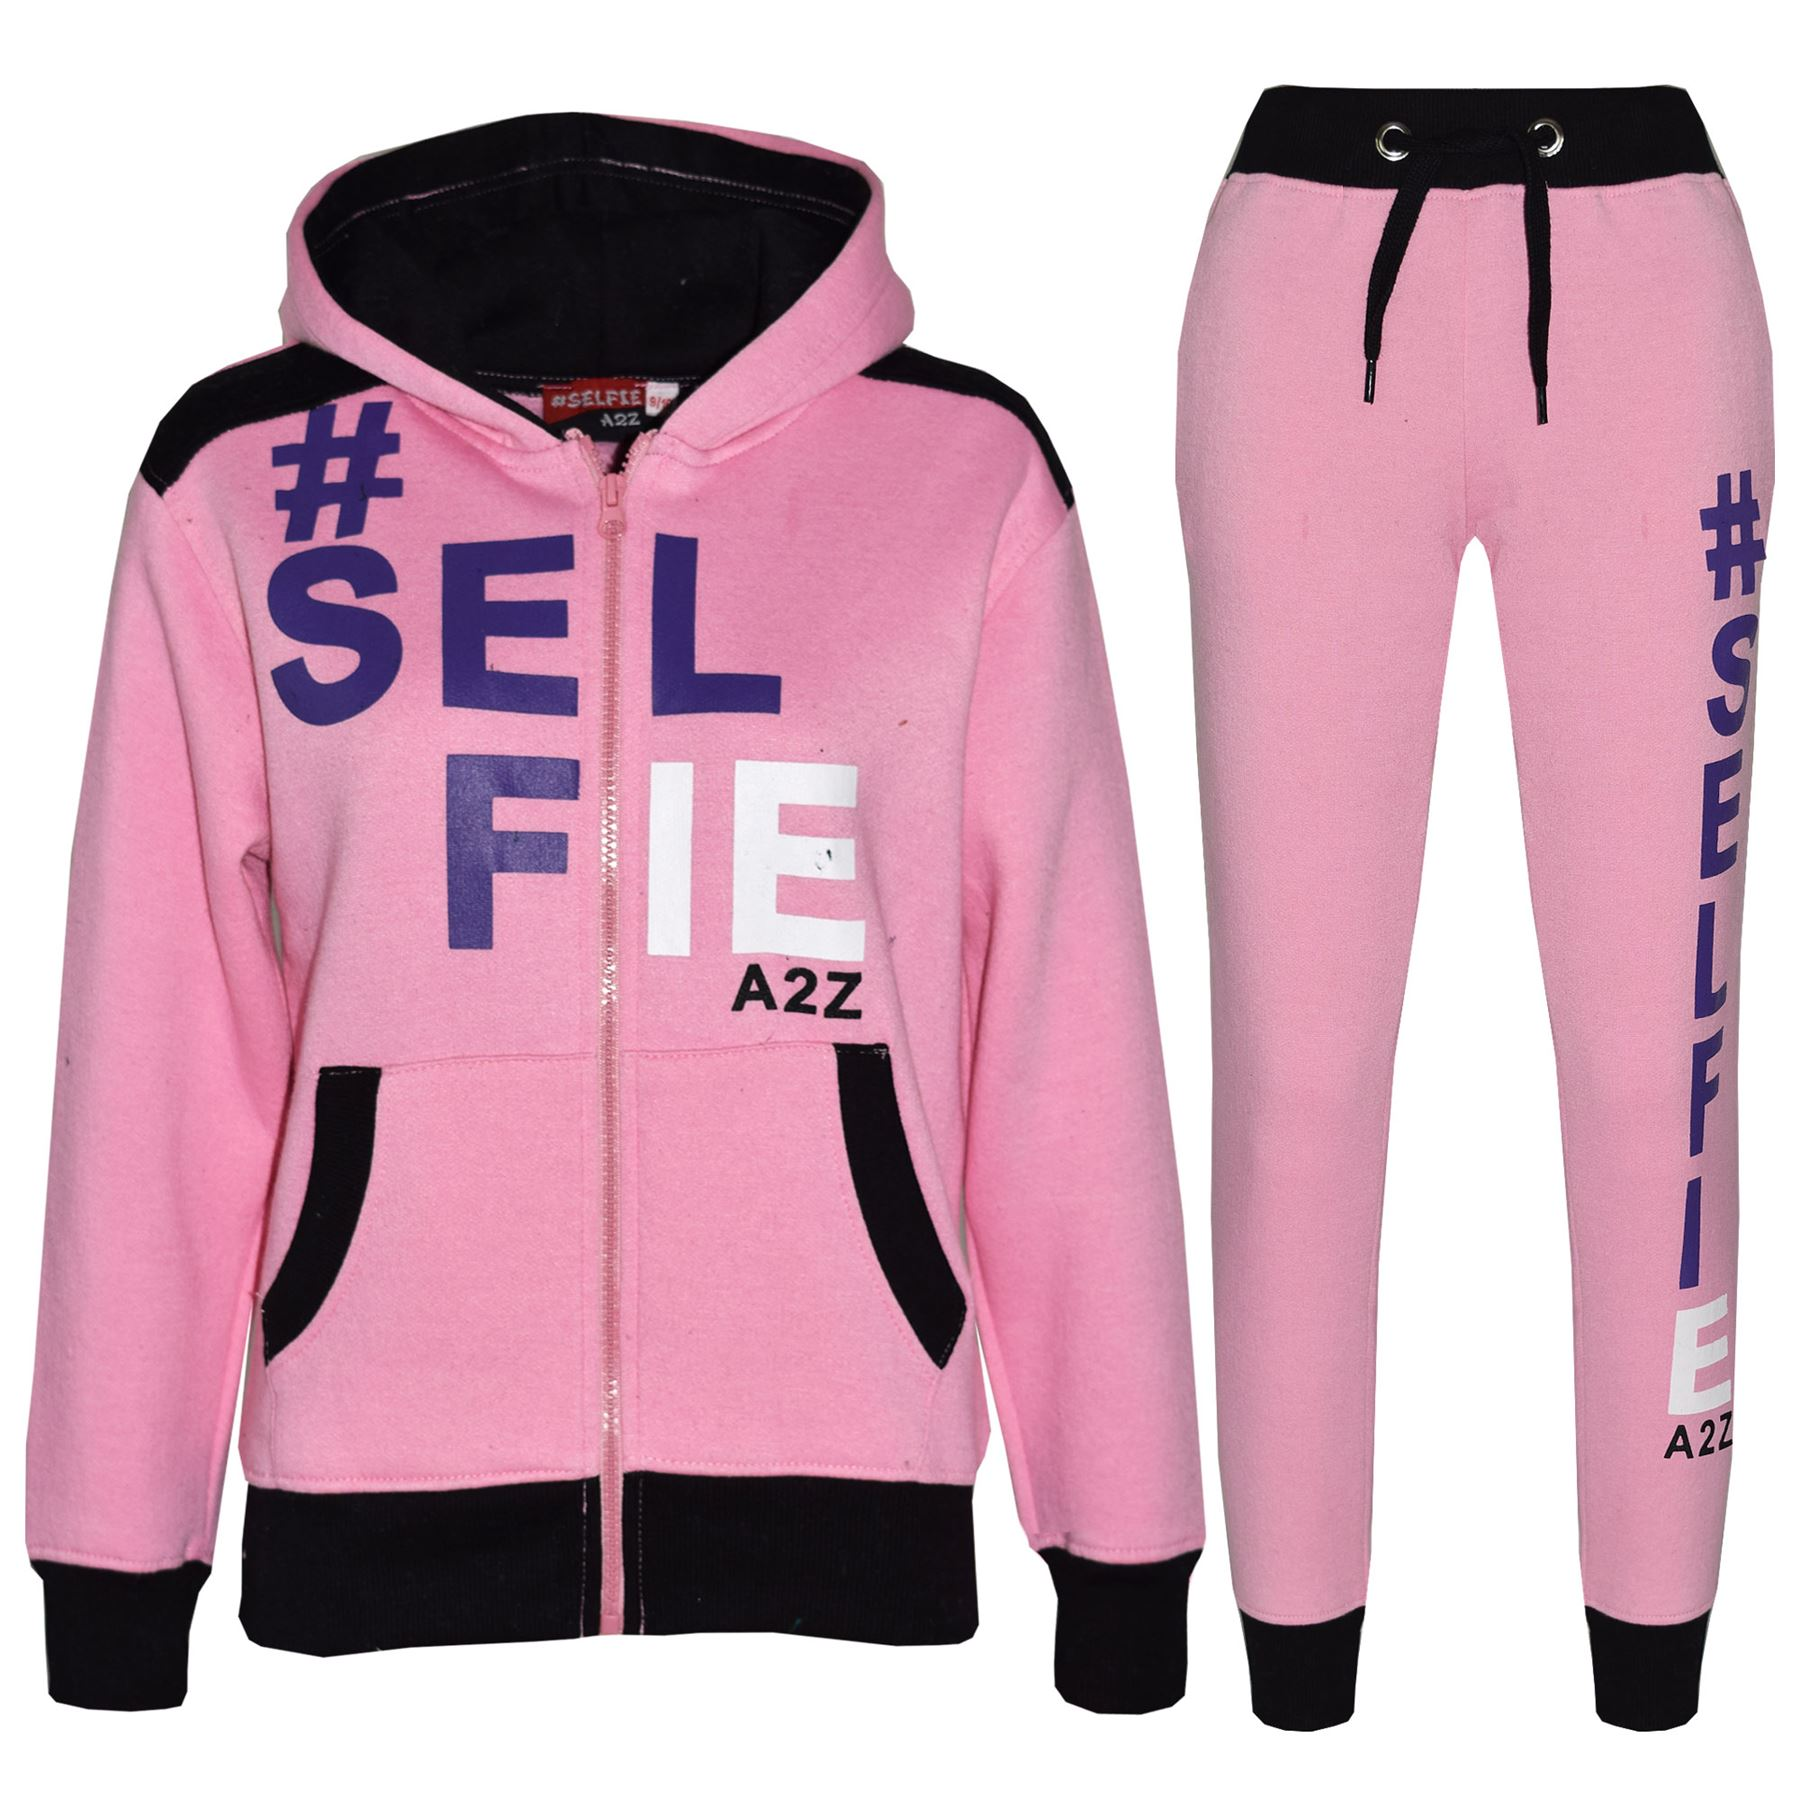 clients first latest fashion value for money Kids Tracksuit Girls Designer's #Selfie Jogging Suit Hoodie Top Bottom 7-13  Year | eBay